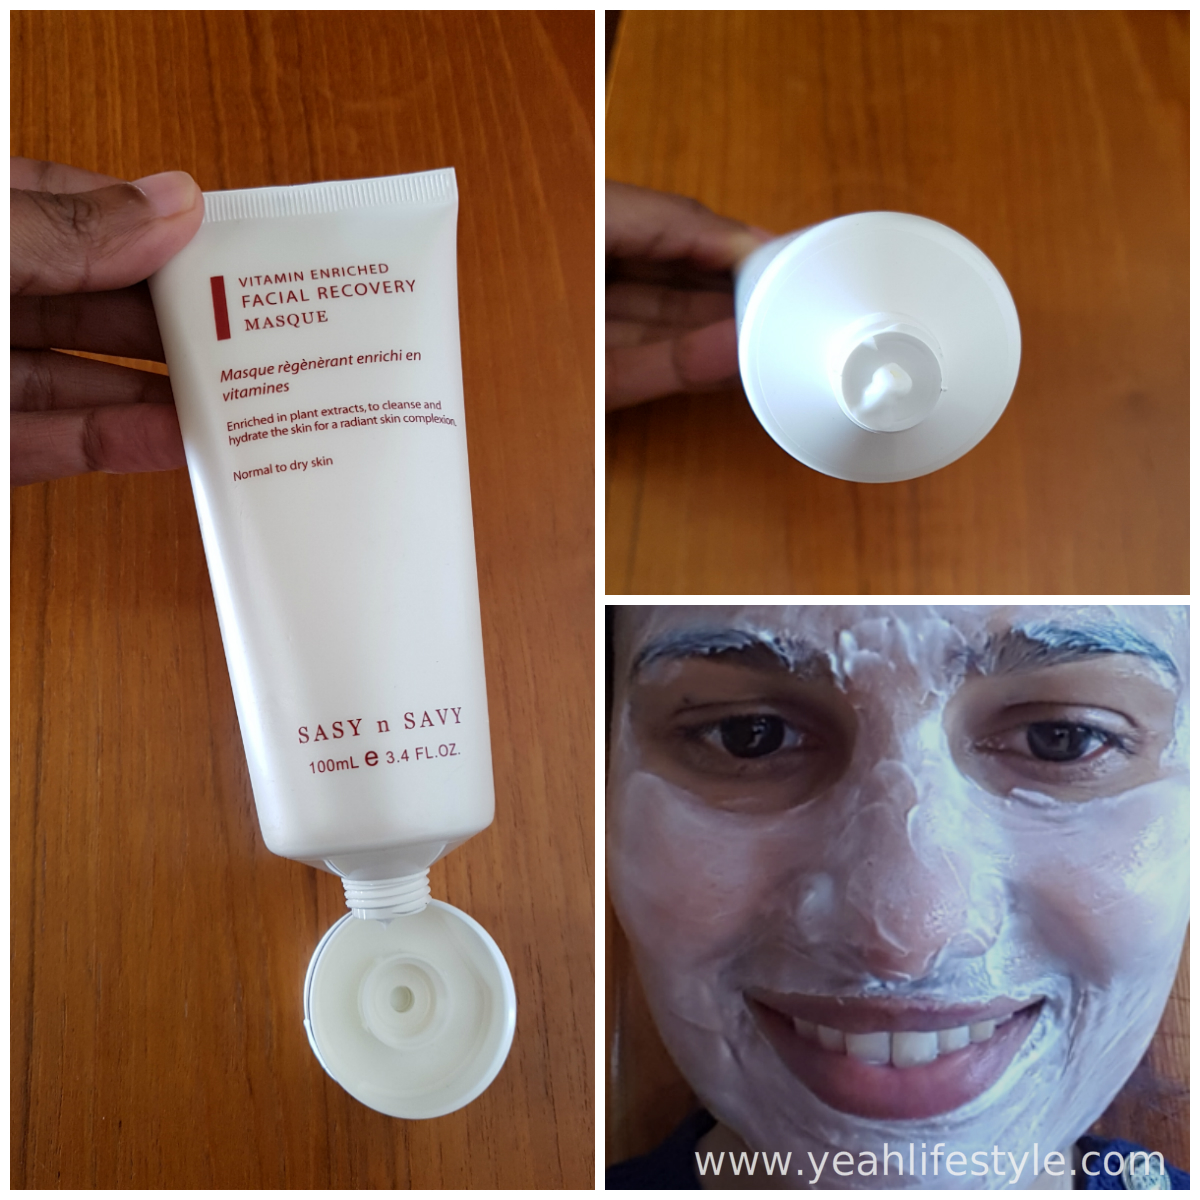 sasy-n-savy-facial-recovery-masque-review-beauty-blogger-yeah-lifestyle-uk